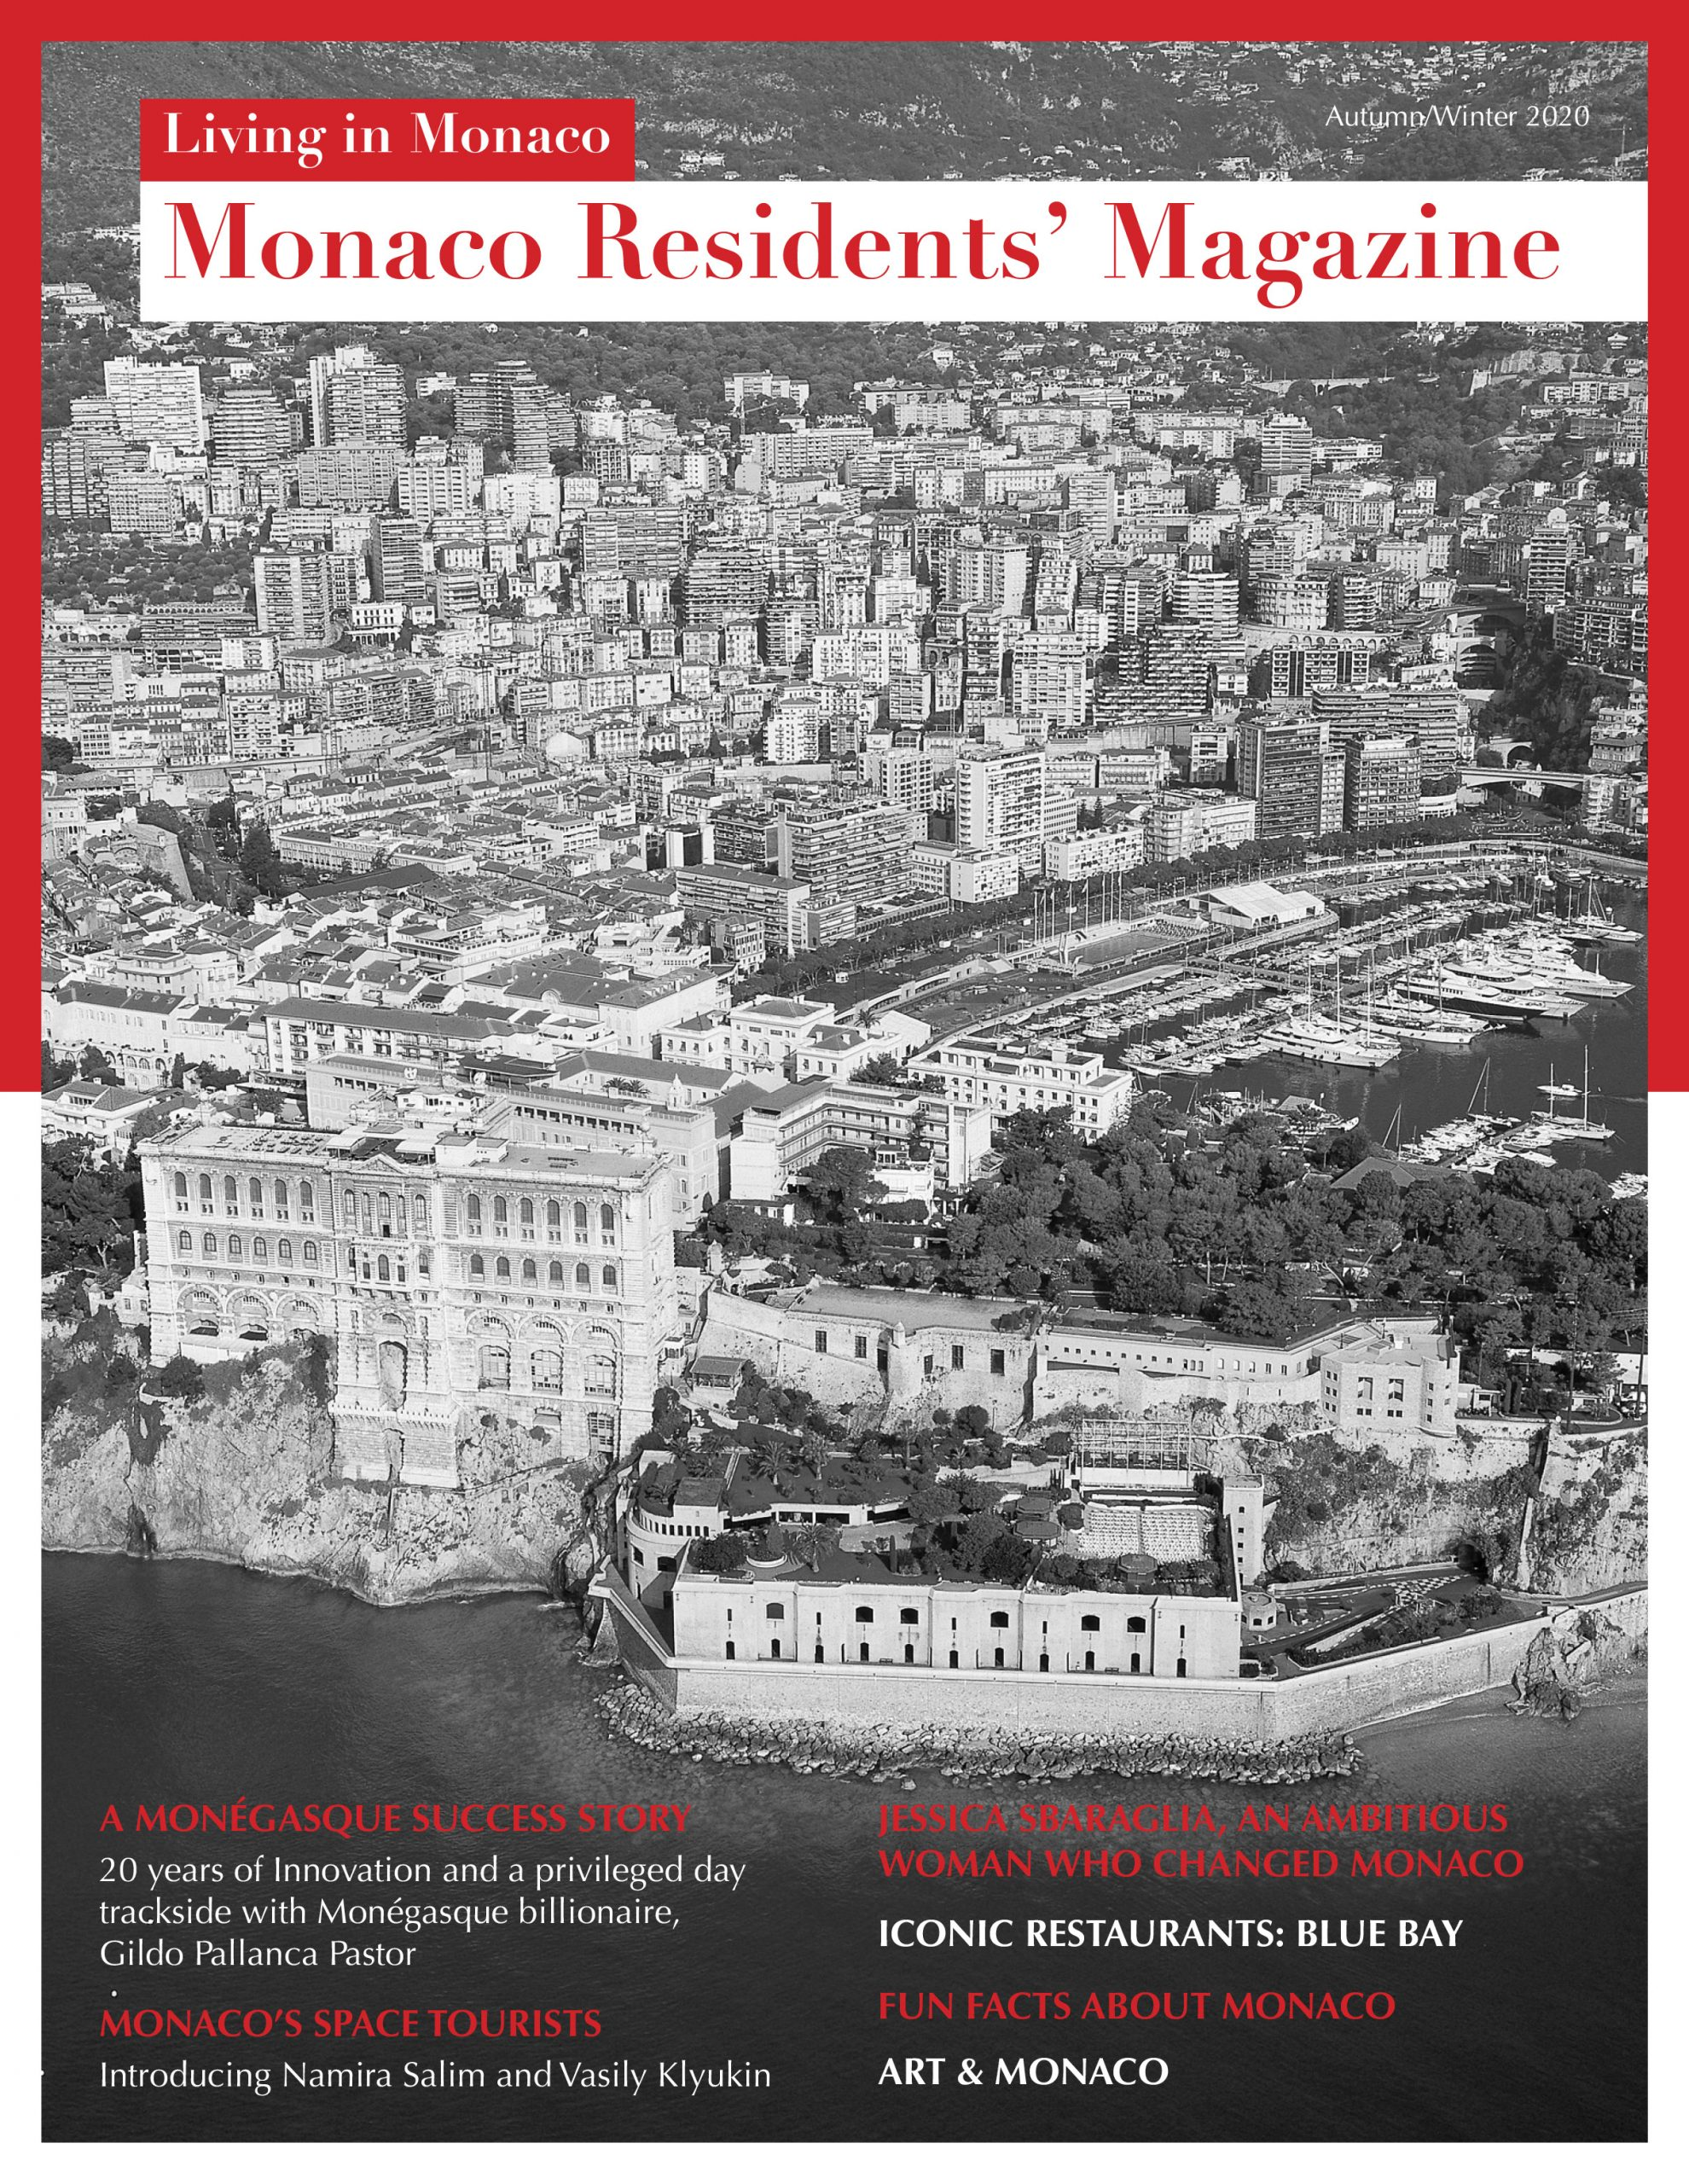 Monaco Residents' Magazine cover (Autumn/Winter 2020)